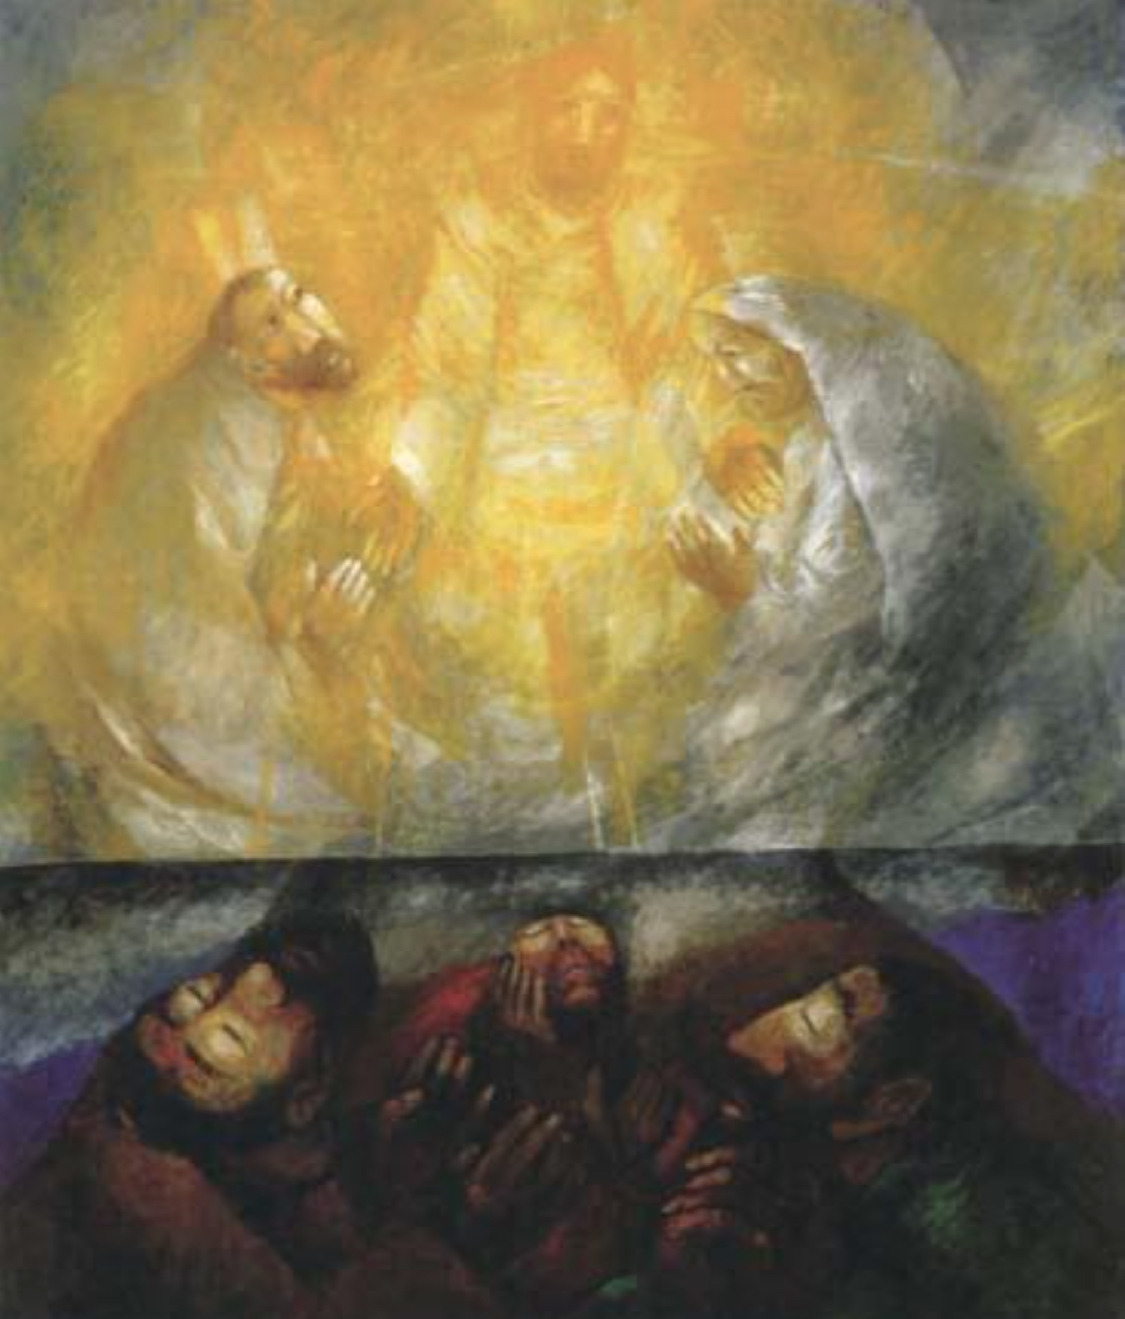 Reflections on the theme of transfiguration from Mark 9